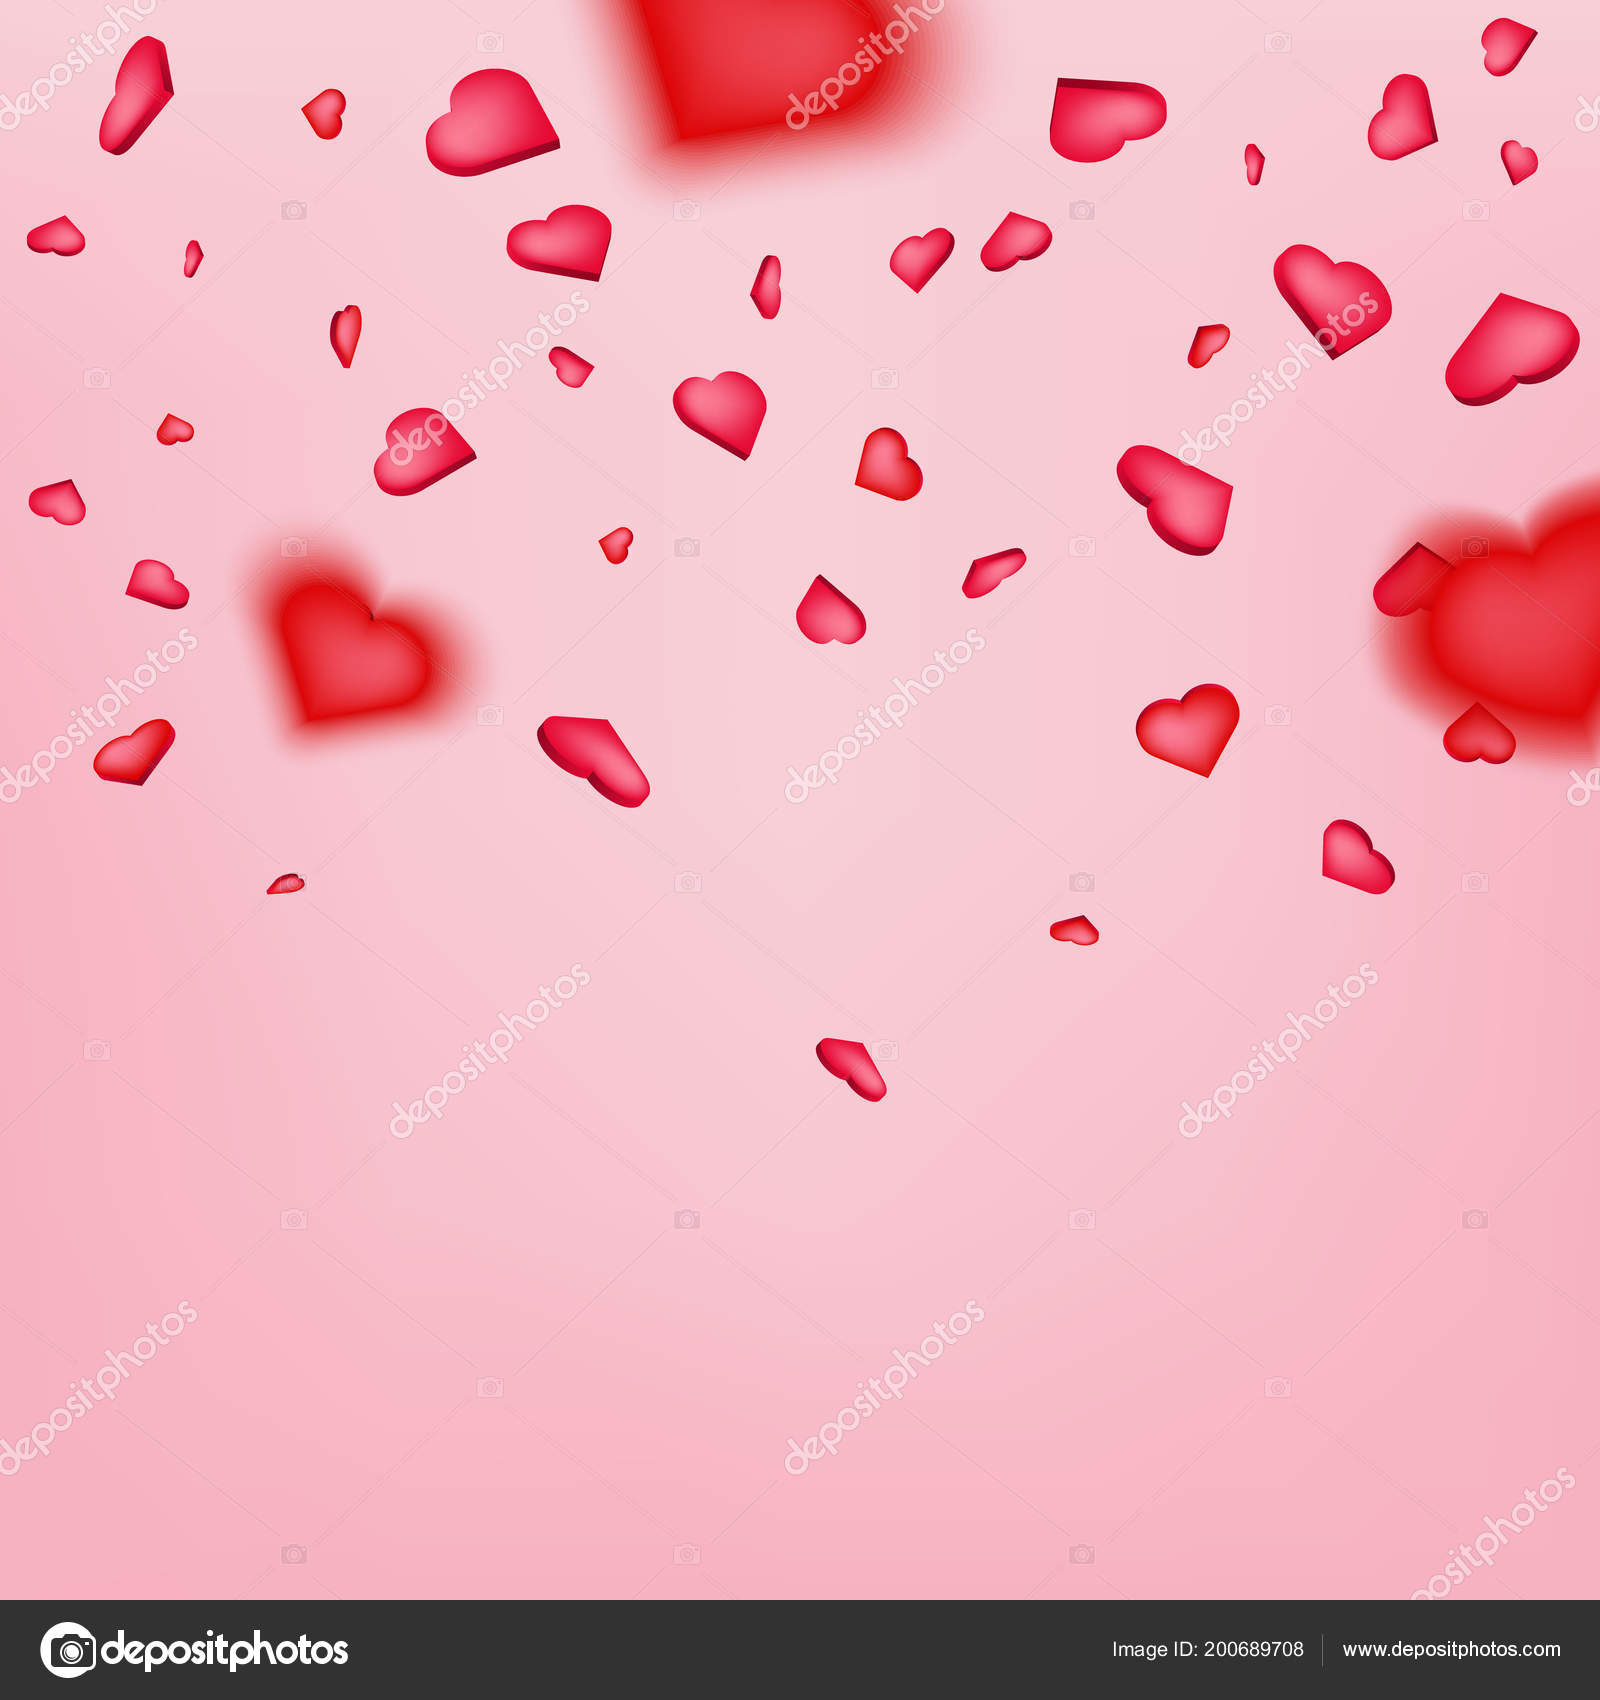 Creative Vector Illustration Of Heart Confetti Happy Valentines